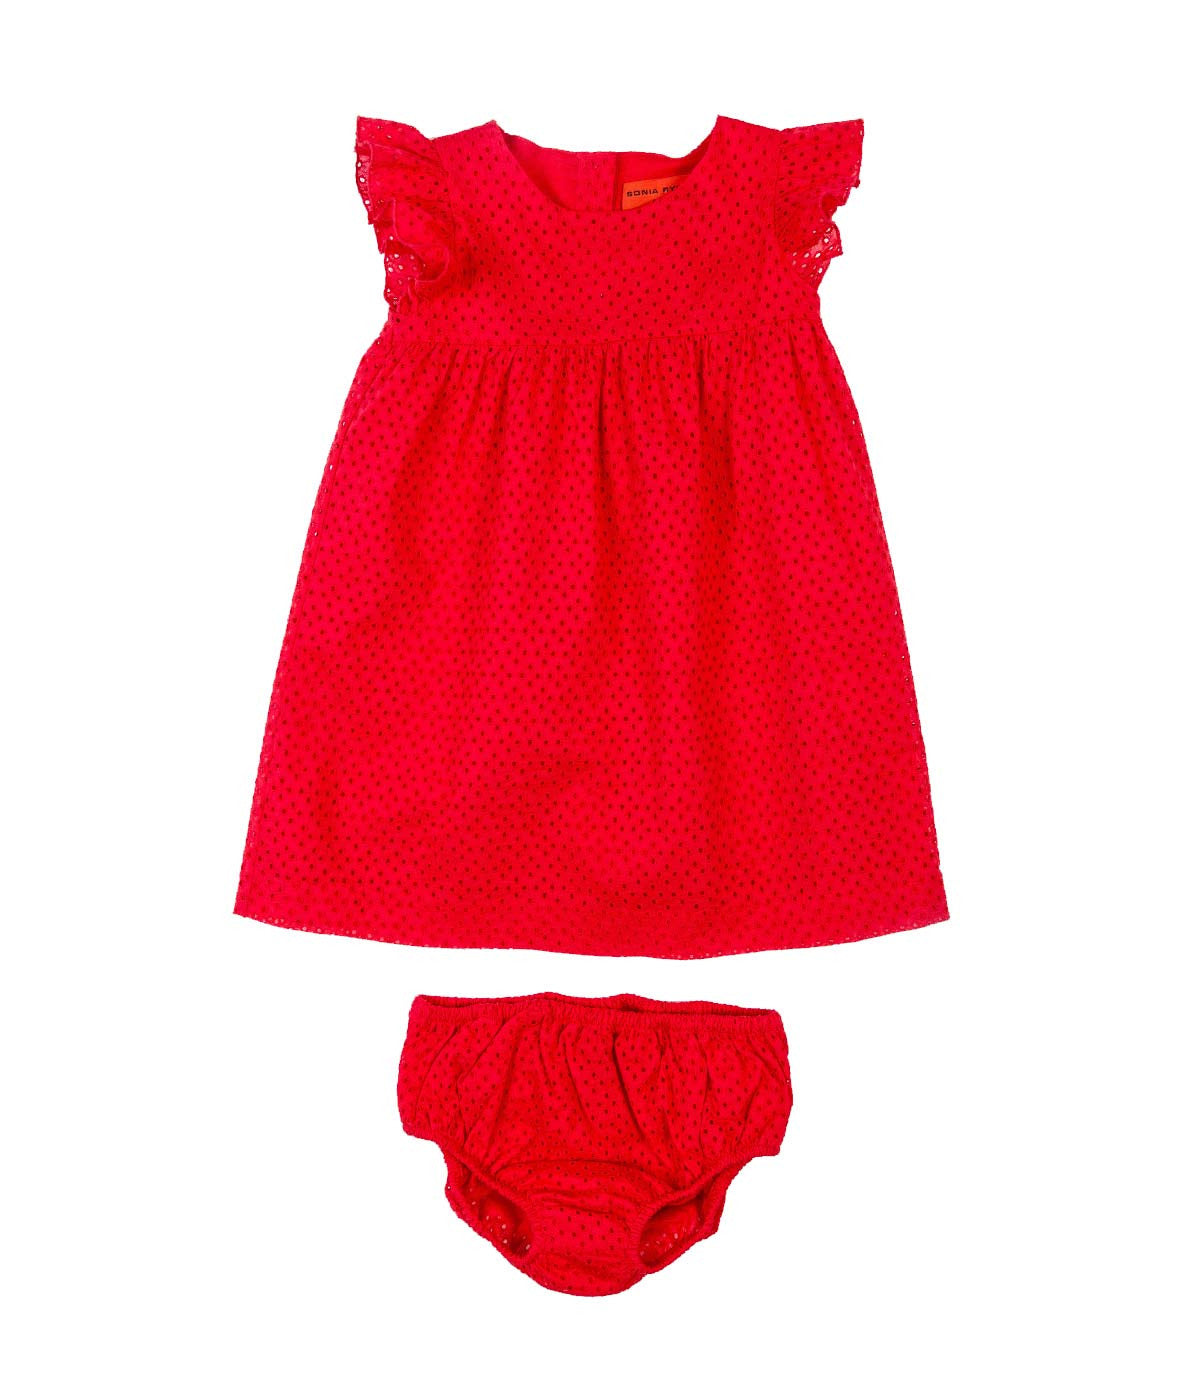 Baby Broderie Anglaise Dress with a Coordinating Under Garment